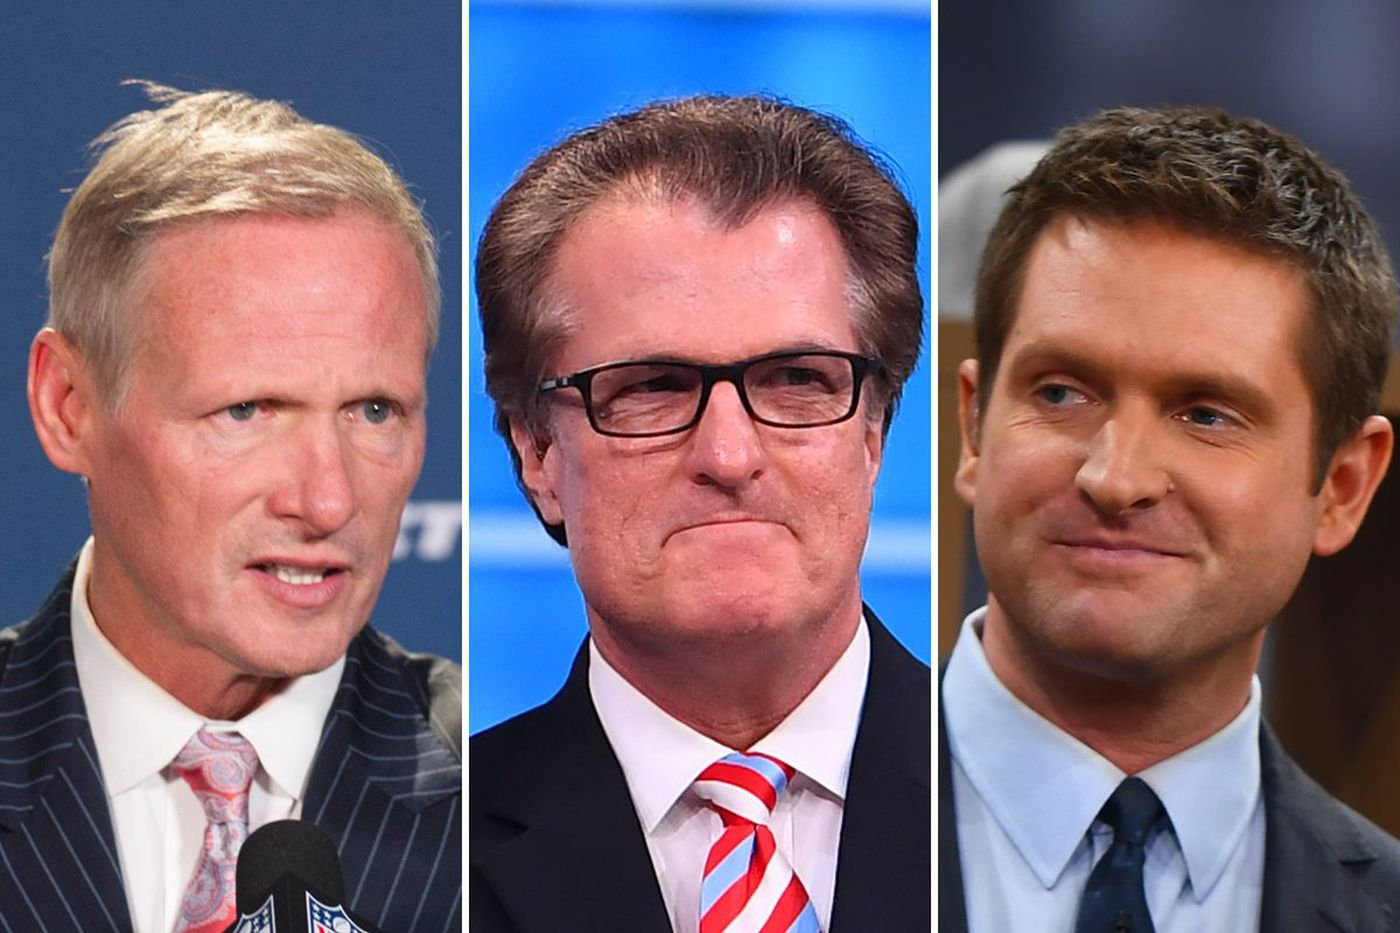 NFL draft 2018: How many picks did Mel Kiper, Mike Mayock and Todd McShay actually get right?